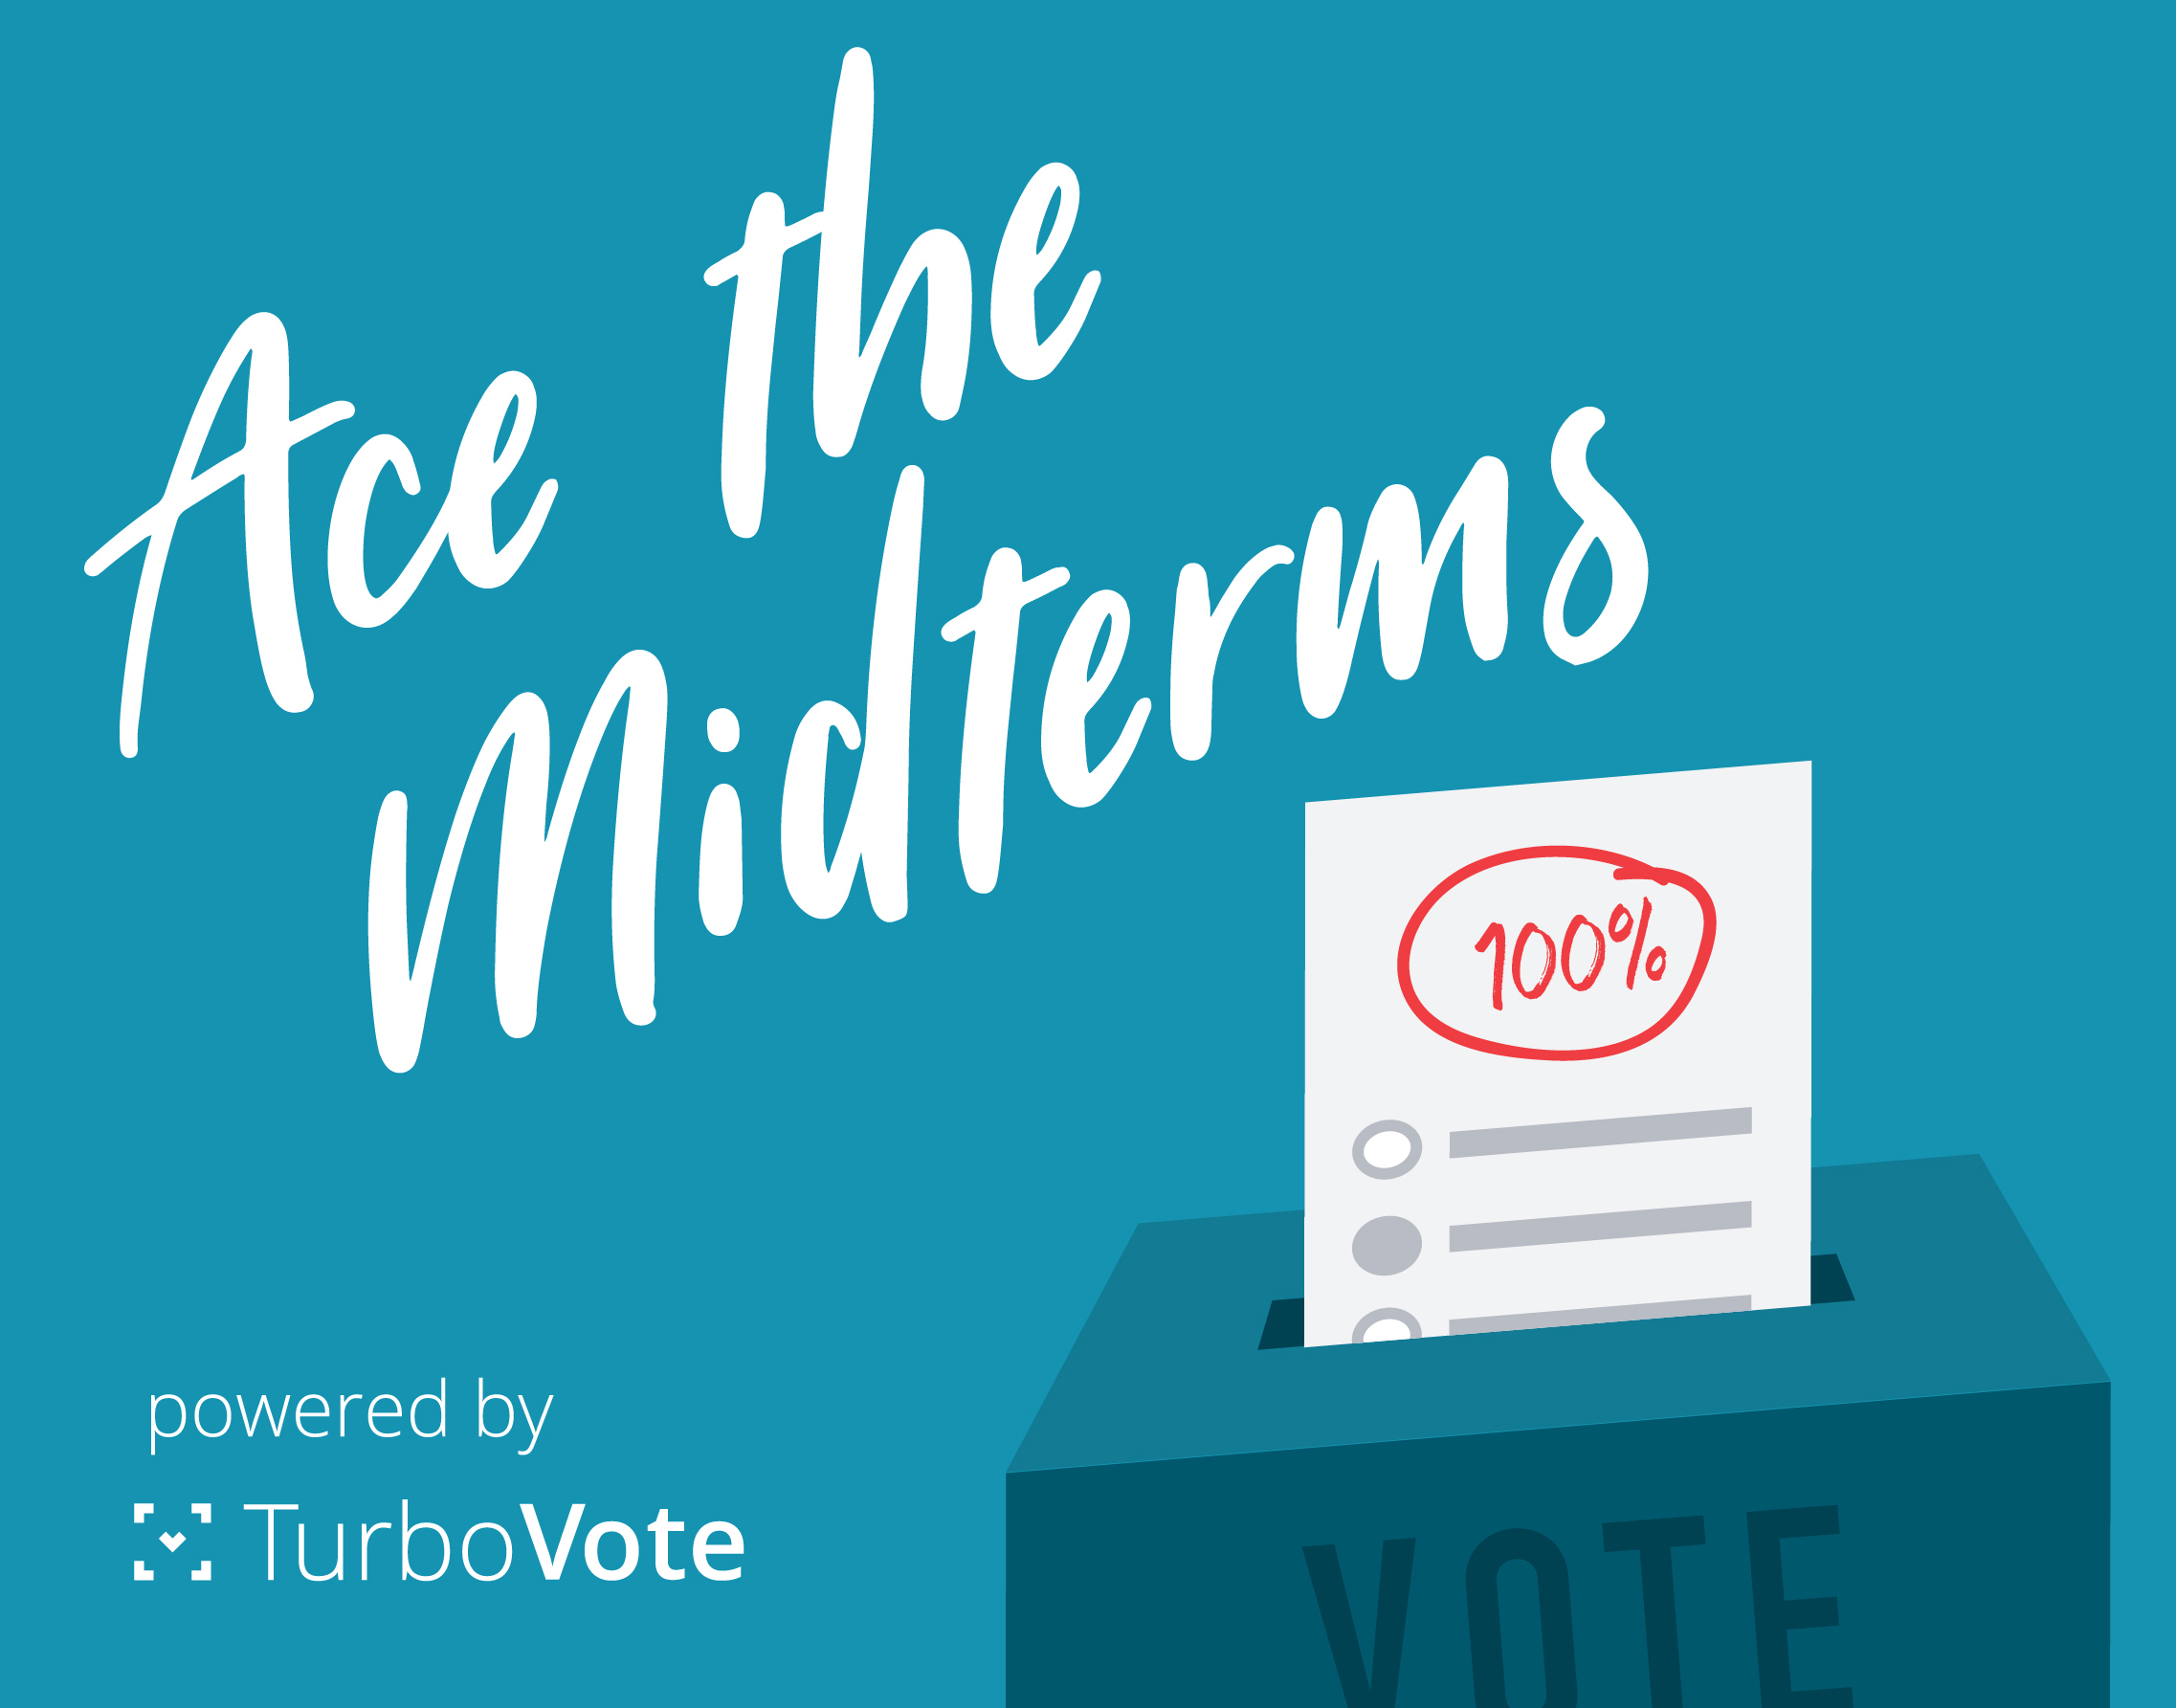 Ace the Midterms logo